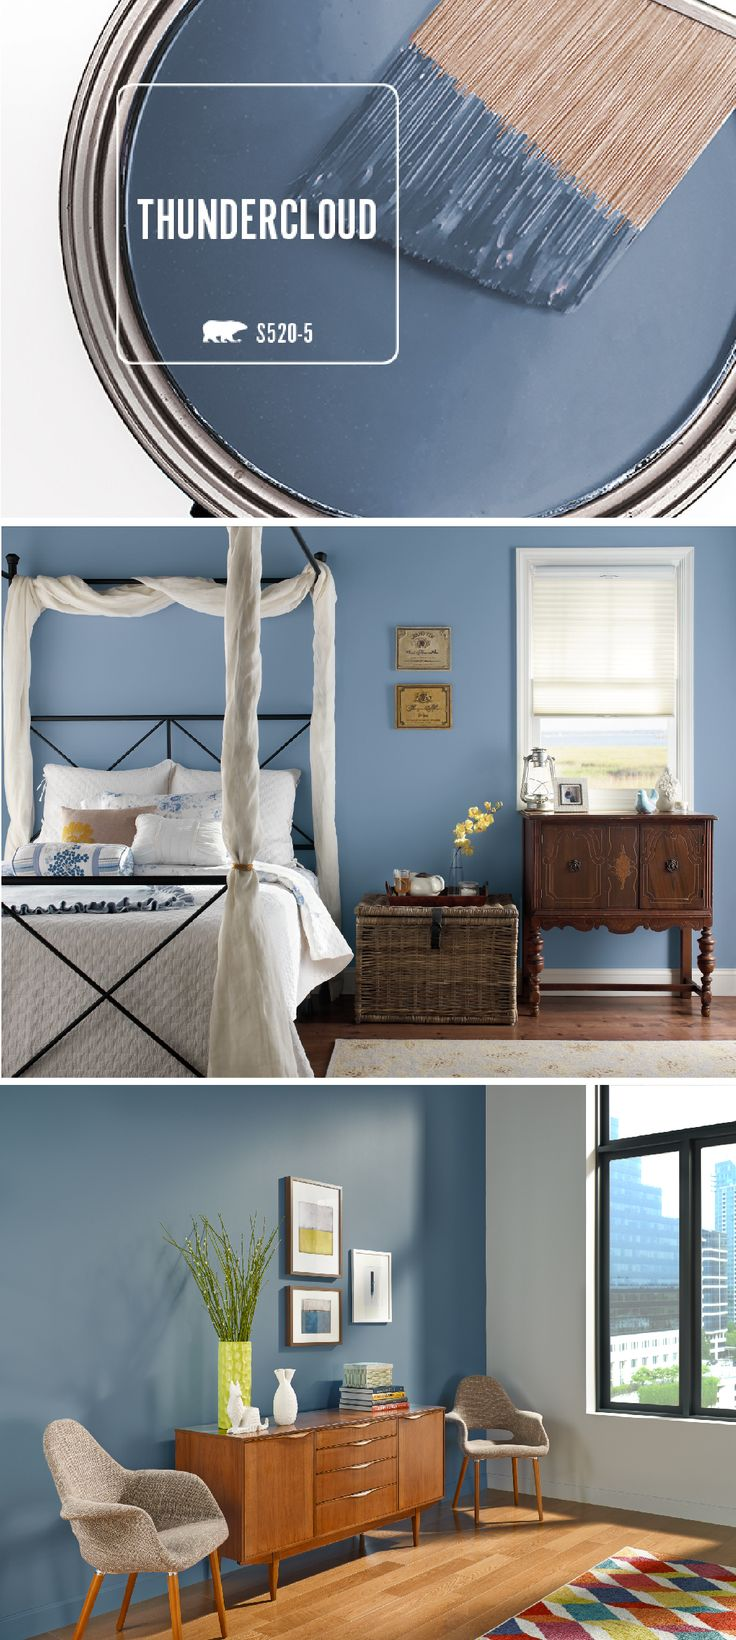 The mysterious and powerful tone of BEHR Thundercloud makes the most wonderful inspiration when it comes to taking design risks.  Check out these stylish spaces for ideas on how to incorporate bold shades into your own home.